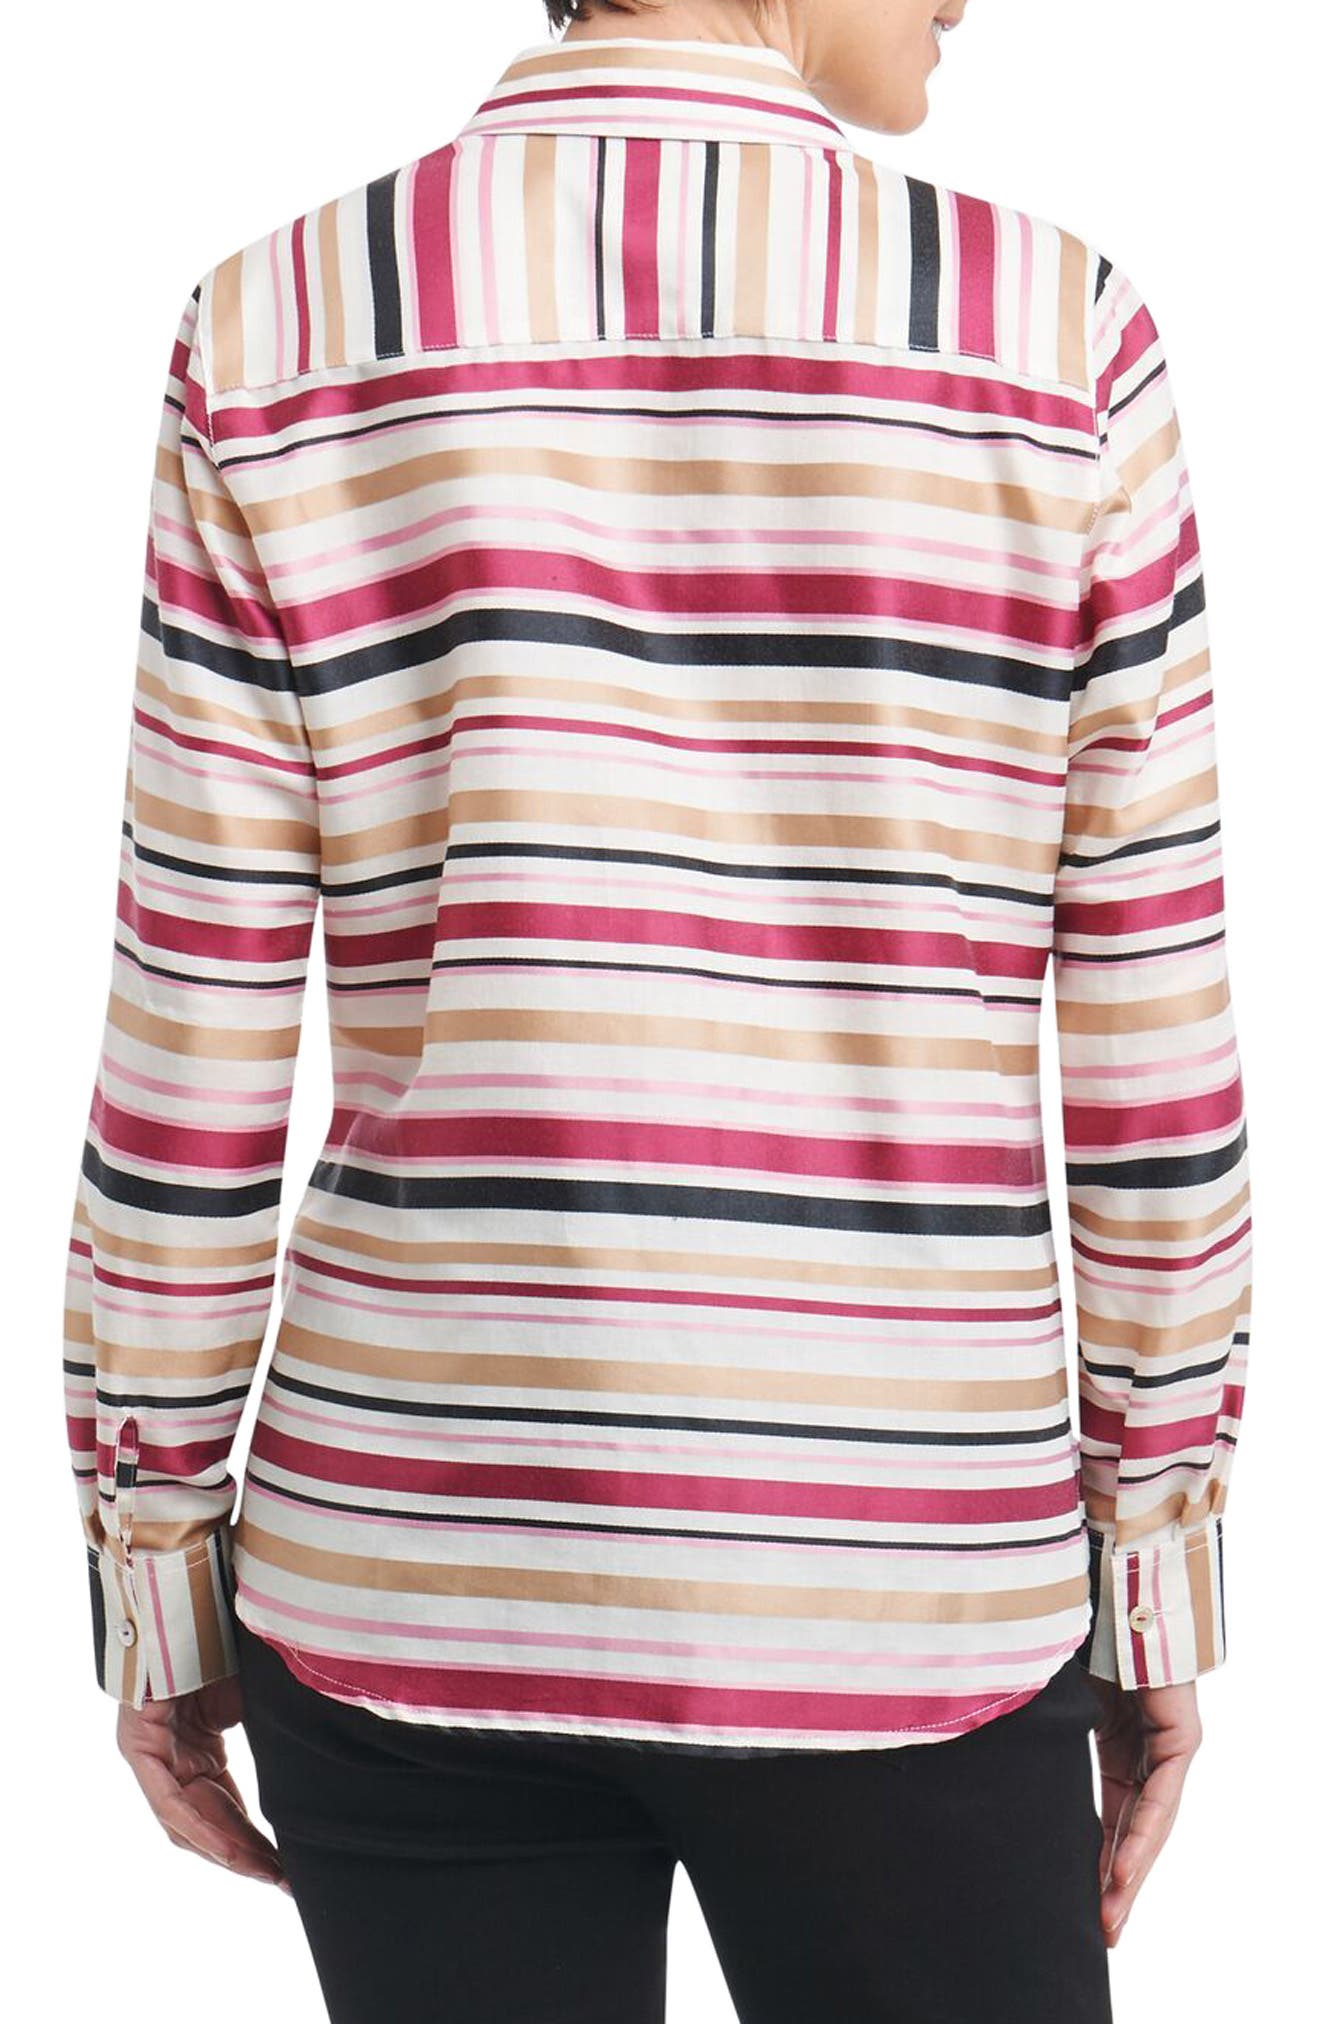 Alternate Image 2  - Foxcroft Addison Stripe Print Sateen Shirt (Regular & Petite)